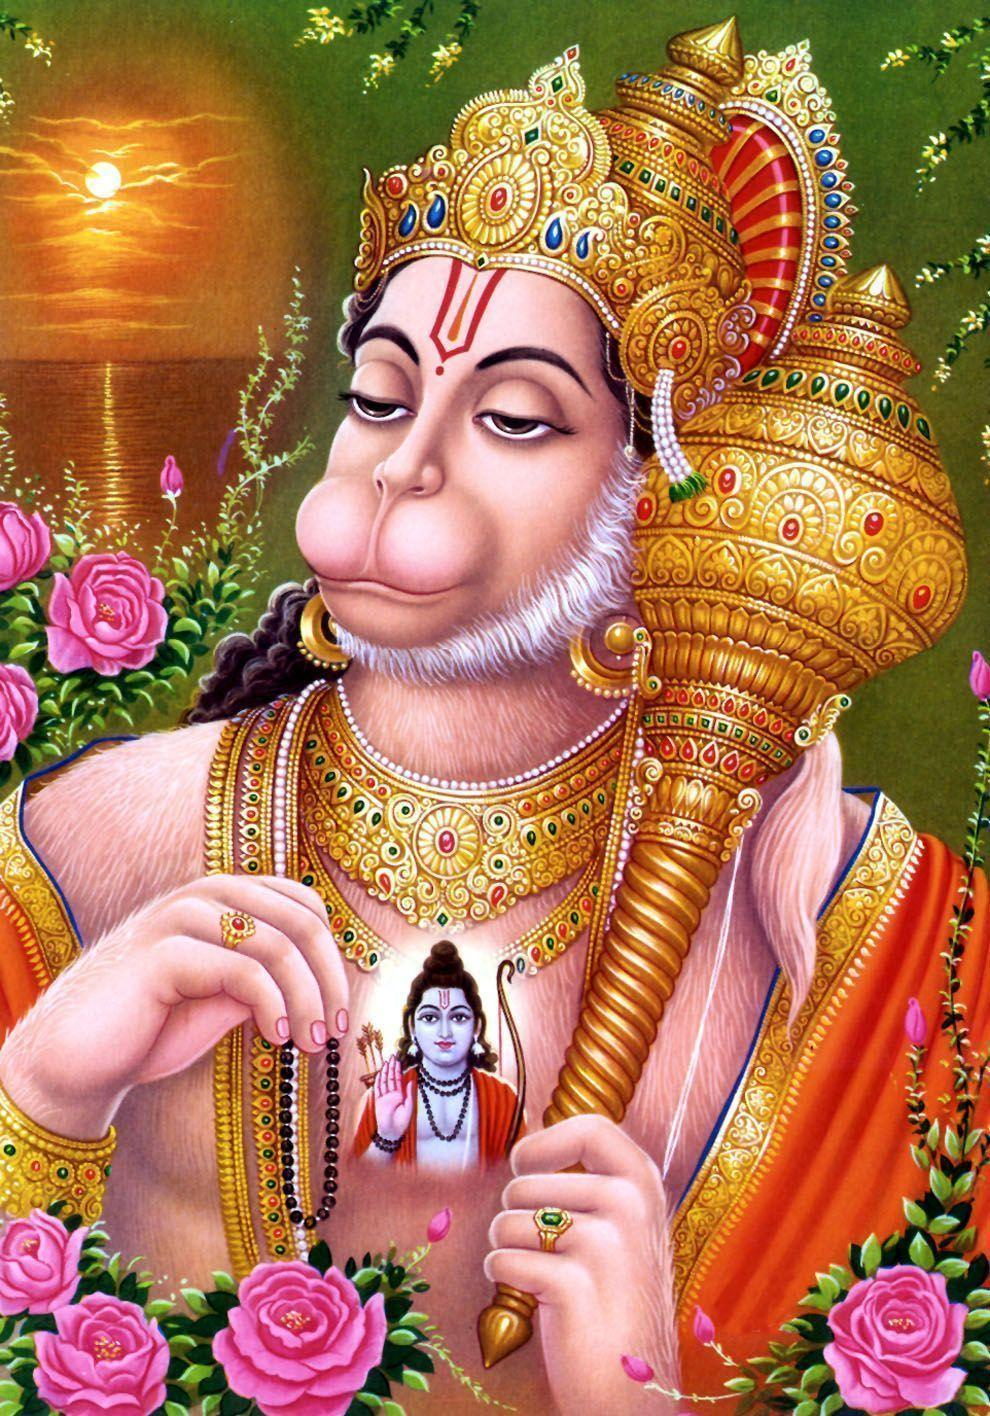 Hanuman dada HD wallpaper - Hindu God wallpaper